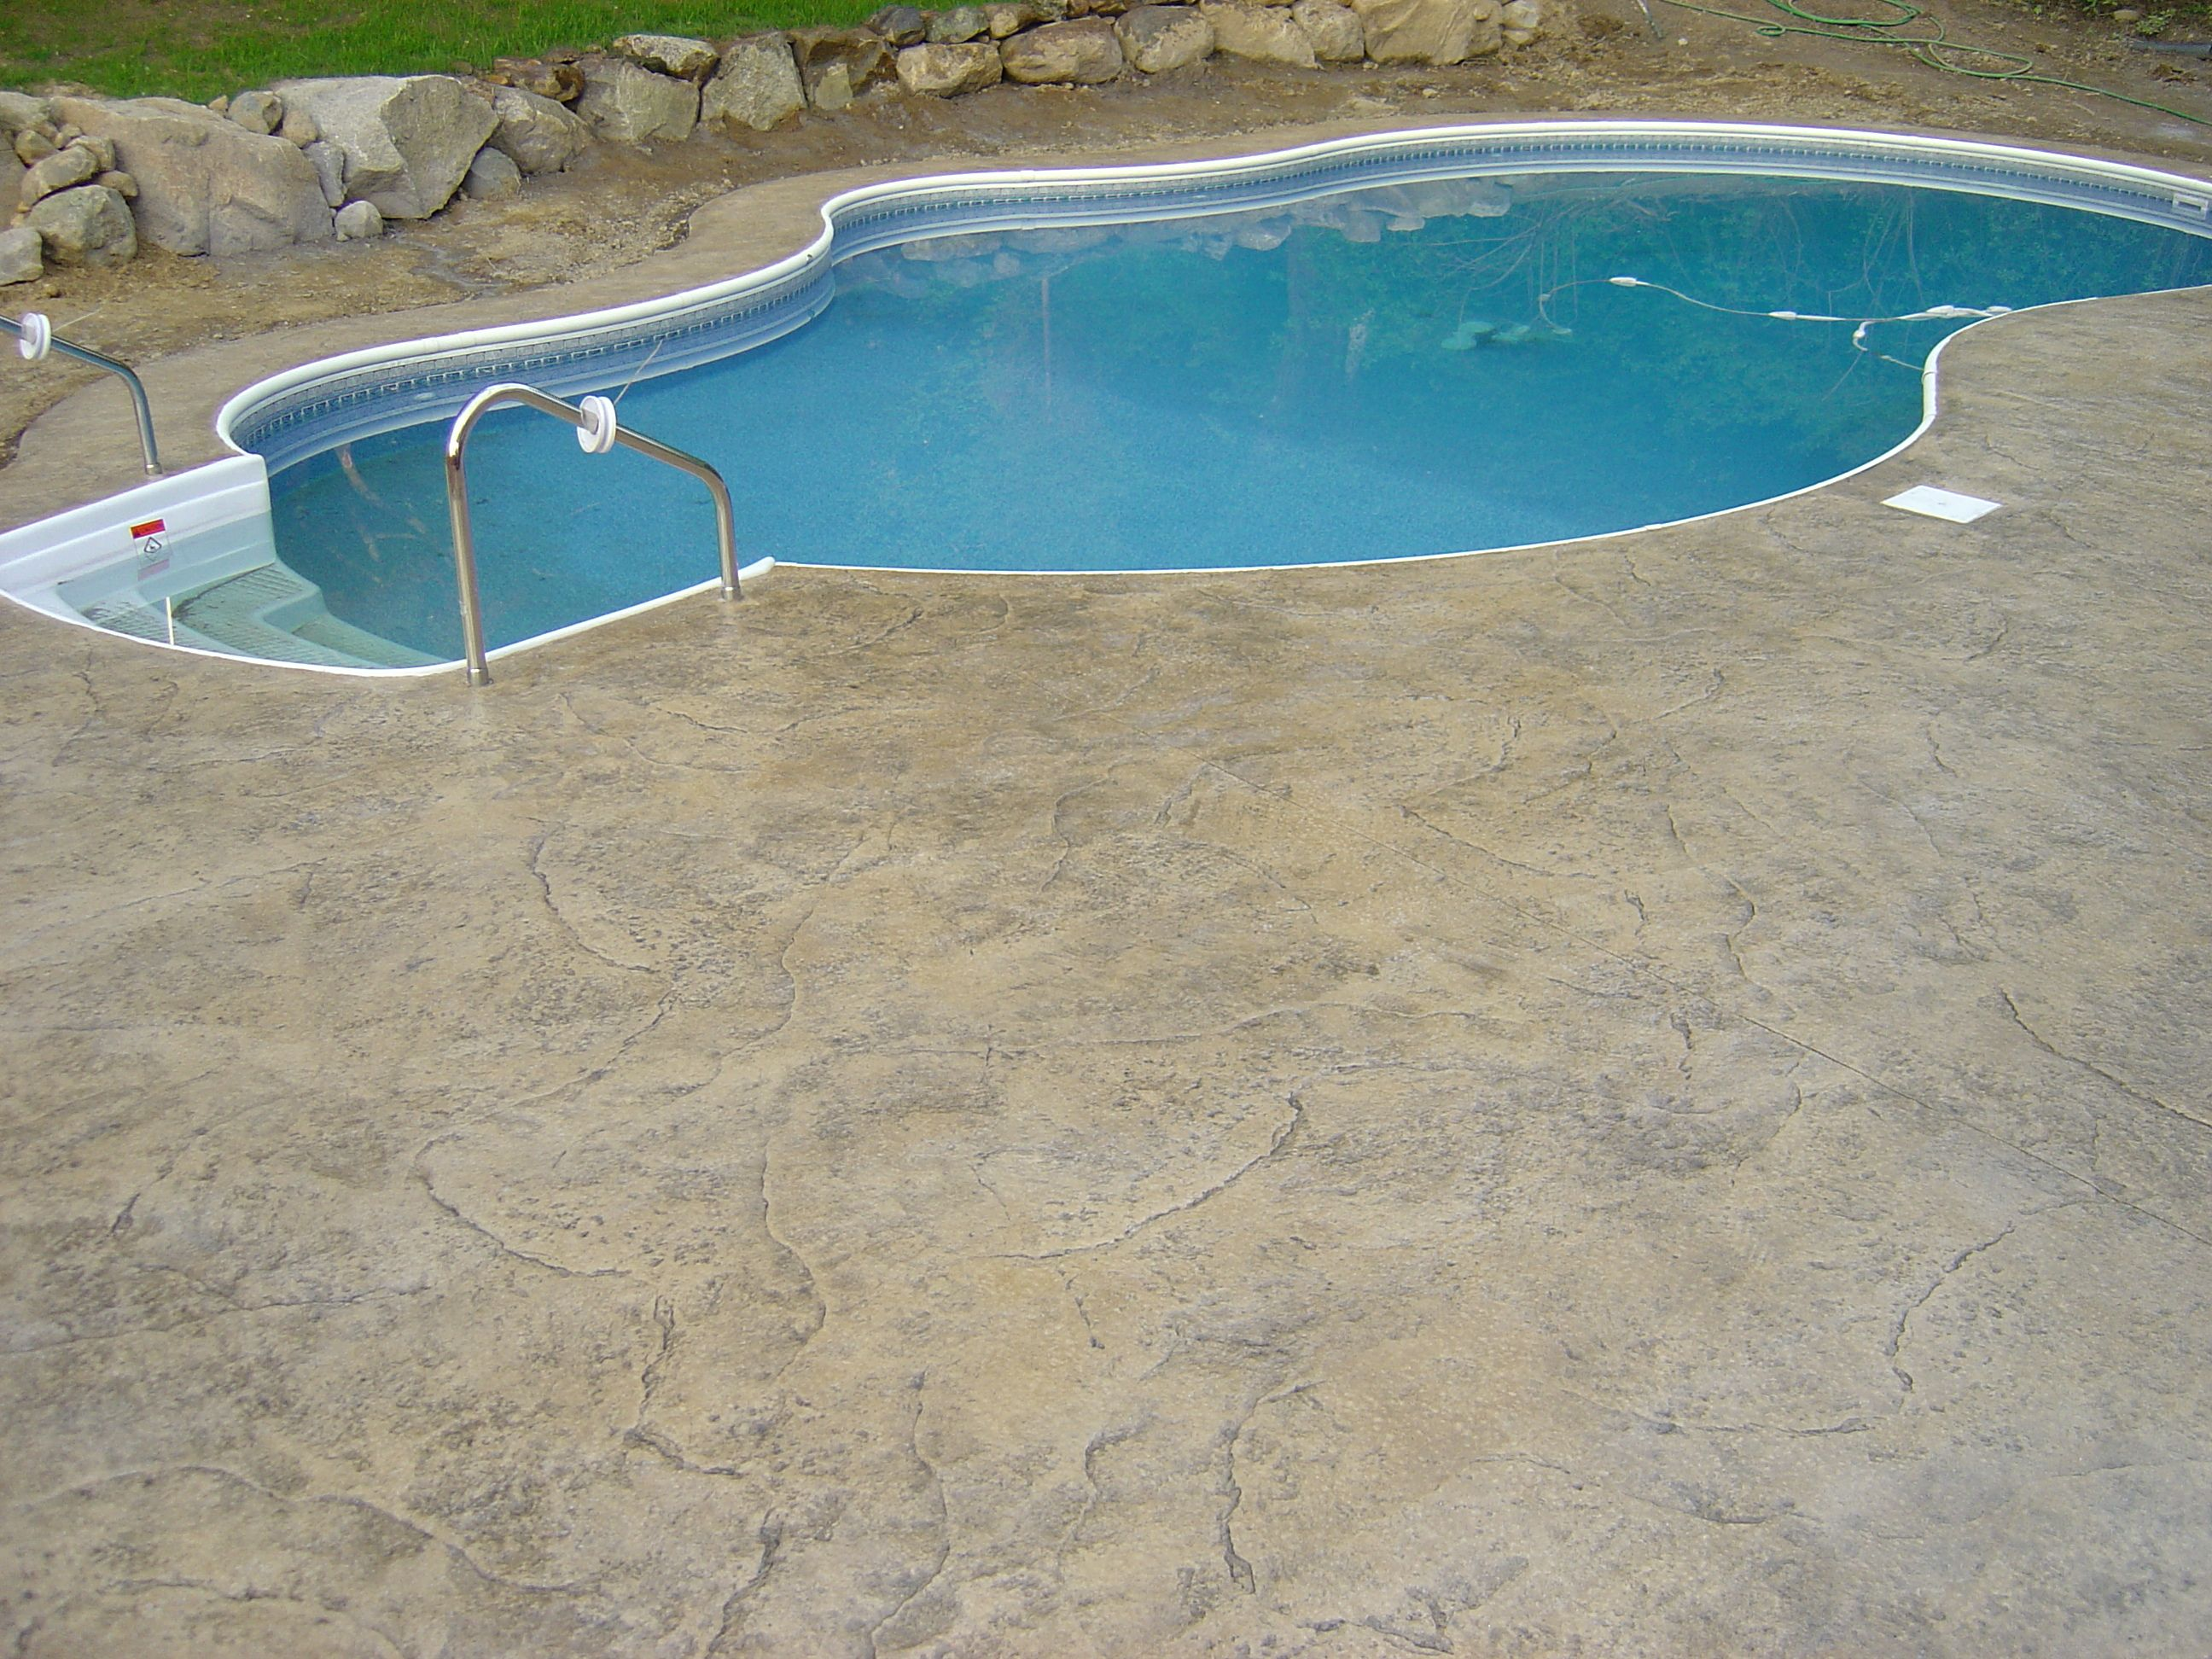 Stamped concrete pool deck. Seamless stone pattern in a